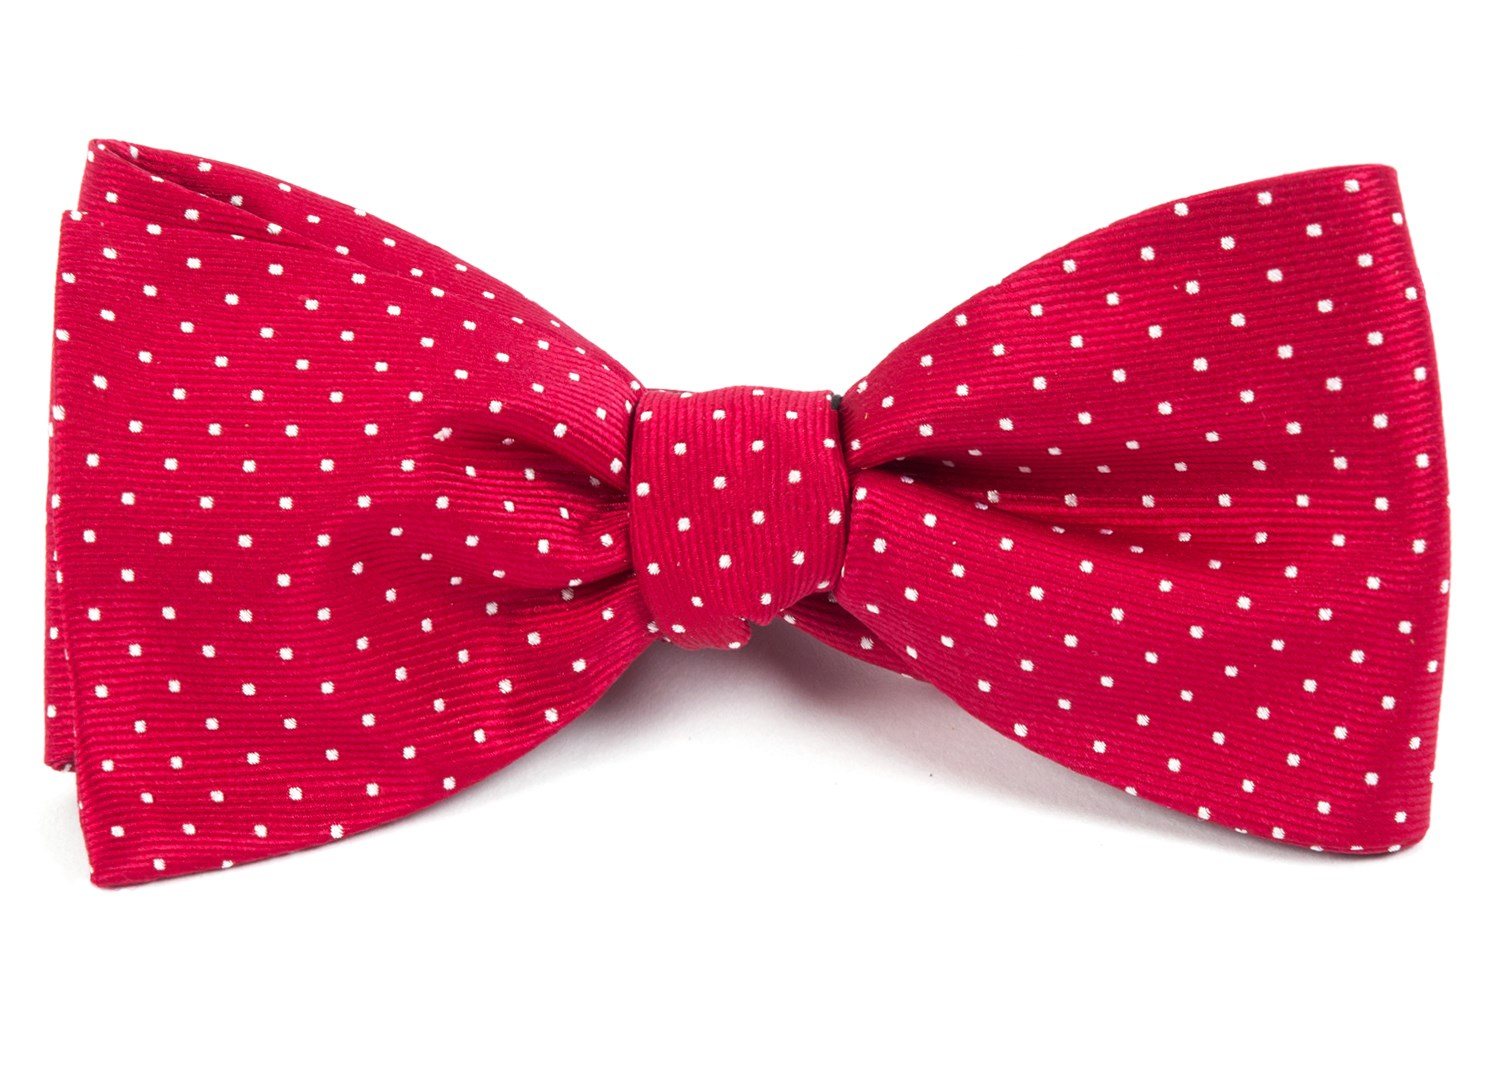 New 1920s Mens Ties & Bow Ties Mini Dots Bow Tie $19.00 AT vintagedancer.com